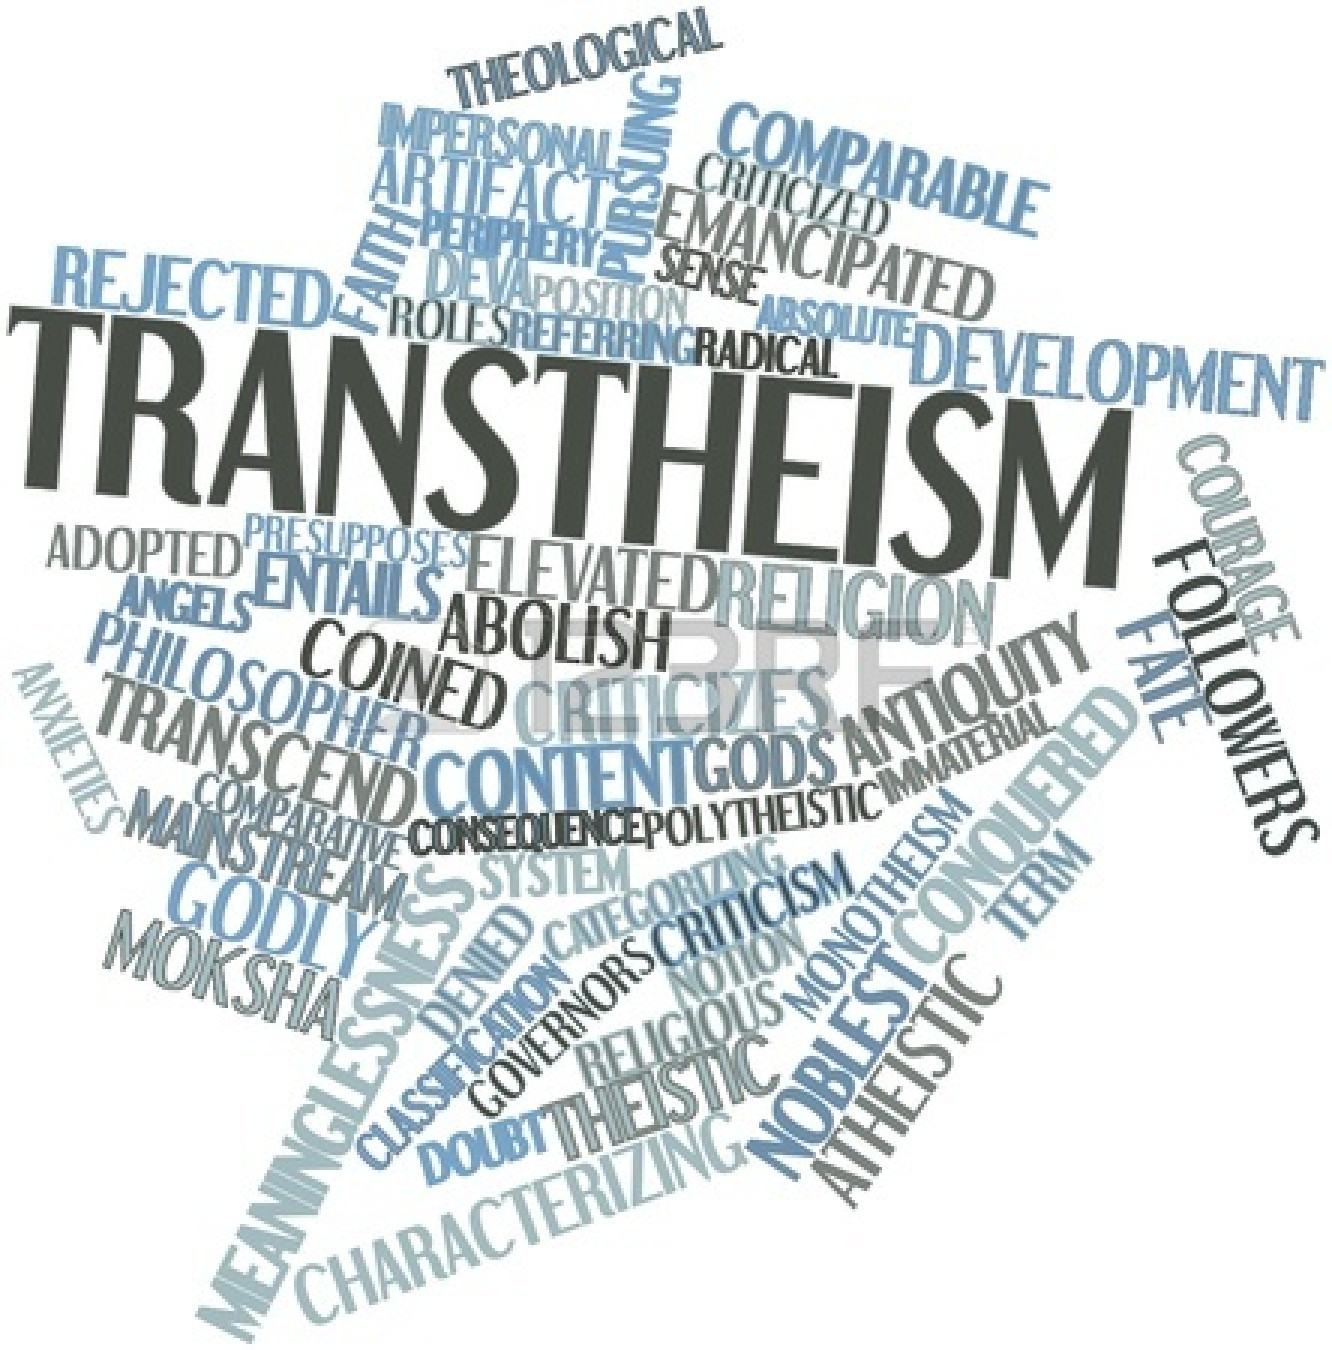 Love this randomly generated abstract cloud of words associated with Transtheism!